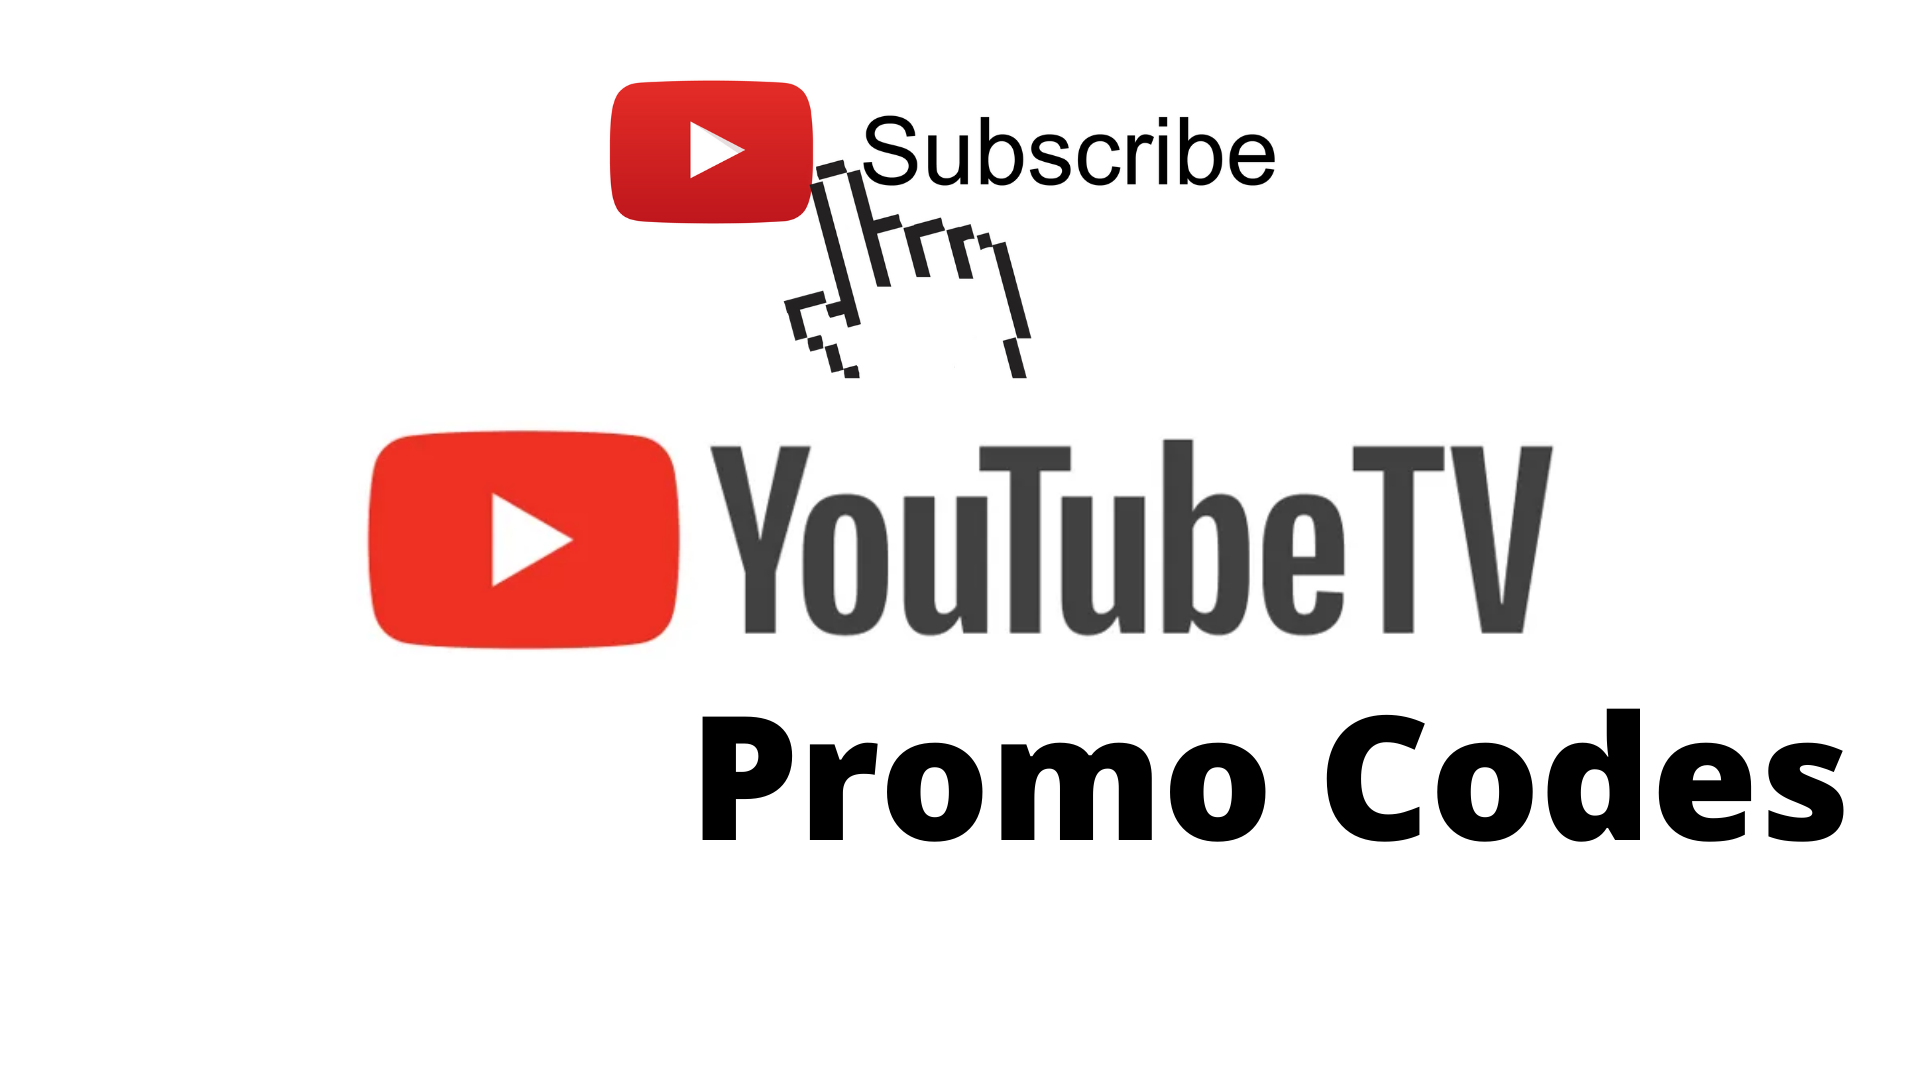 Youtube TV Promo Codes